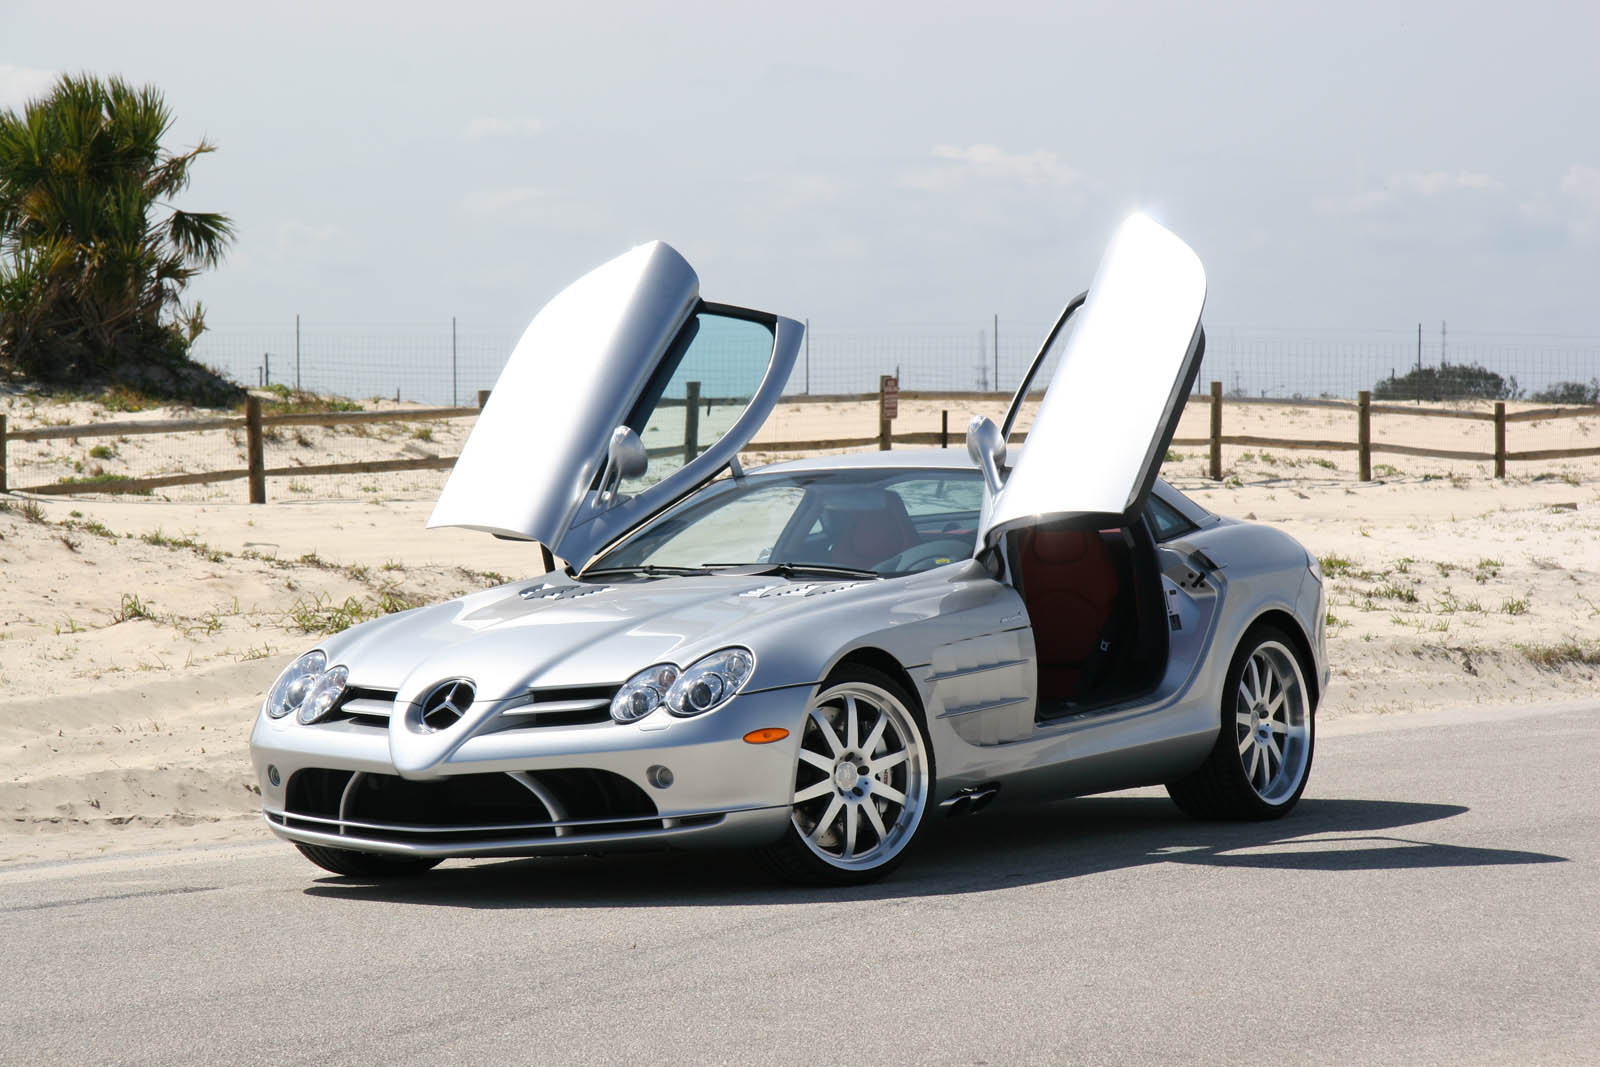 Autovermietung rent a car in indien mieten sie ein for Mercedes benz independence blvd